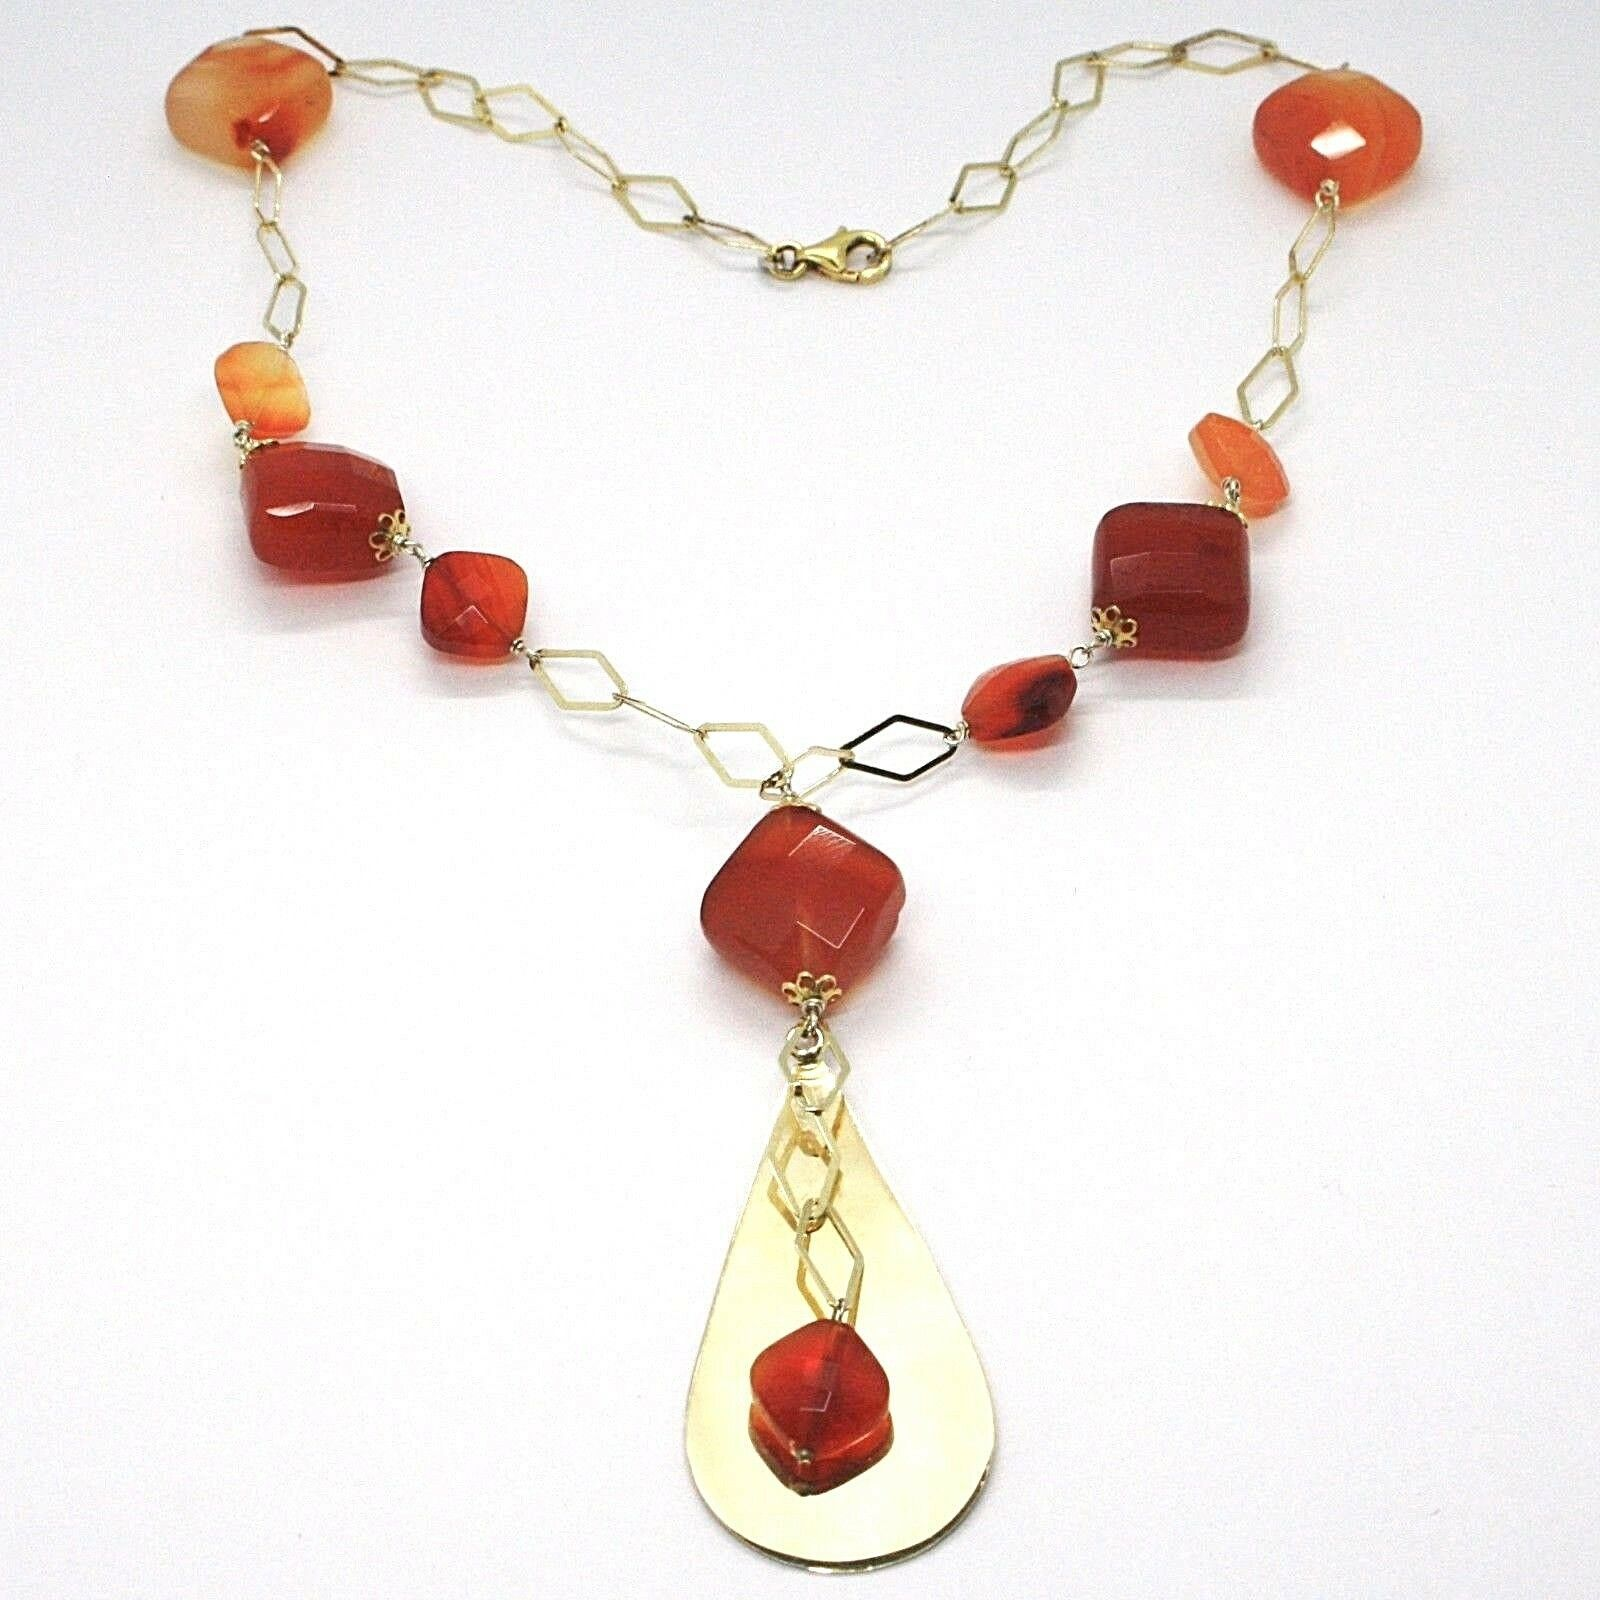 Necklace Silver 925, Yellow, Agate Brown Squared, Drop Pendant